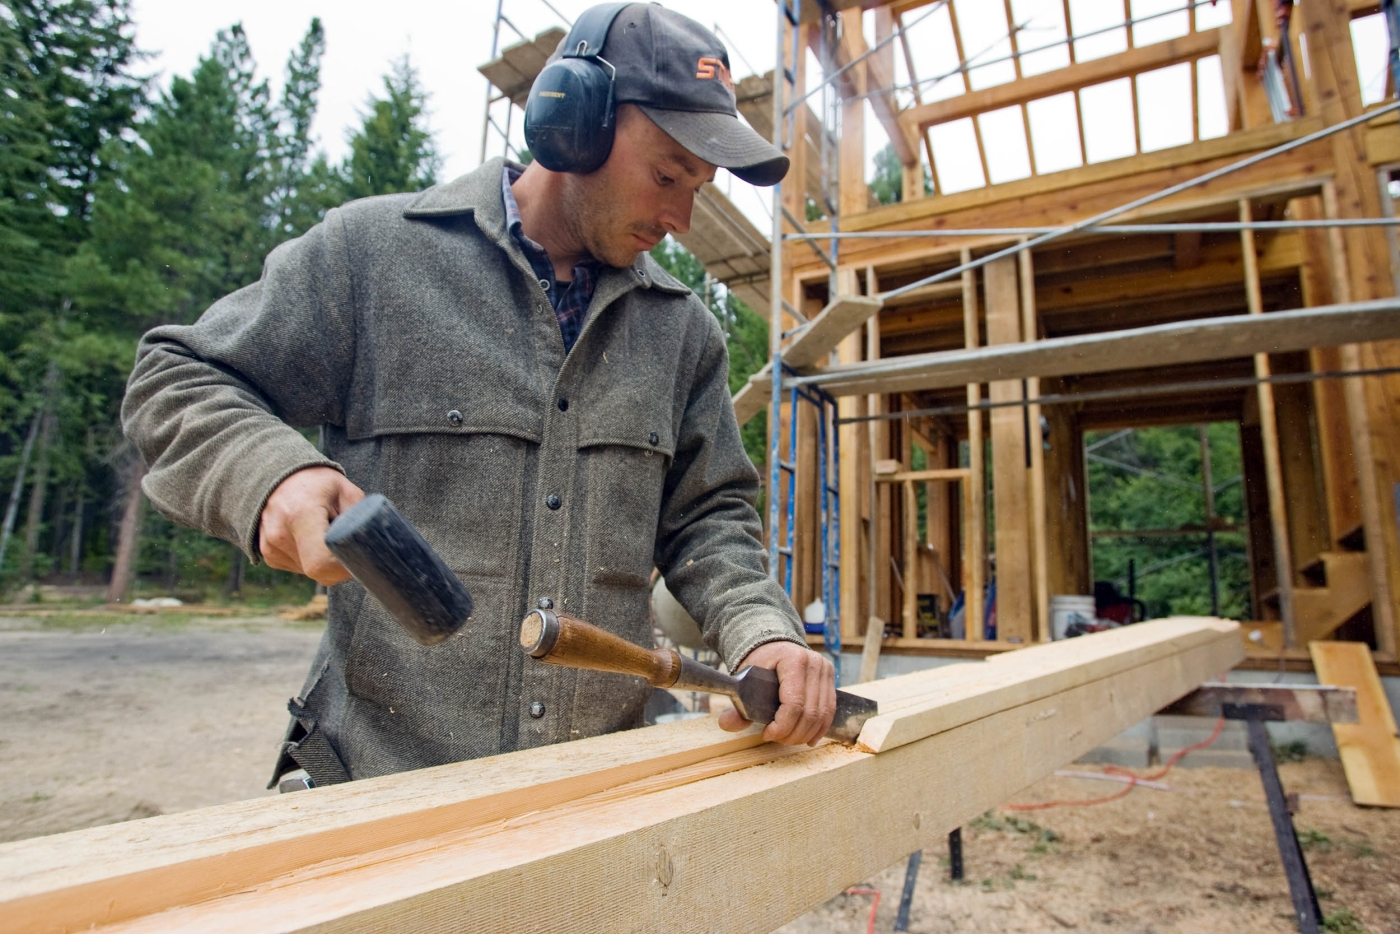 Jonathan Pobst builds a house in Plain, Wash.,  on Aug. 31, 2010, cut from wood from his property and using historic construction methods, including pegs and intricate joinery instead of nails.  (AP Photo/The Wenatchee World, Mike Bonnicksen)